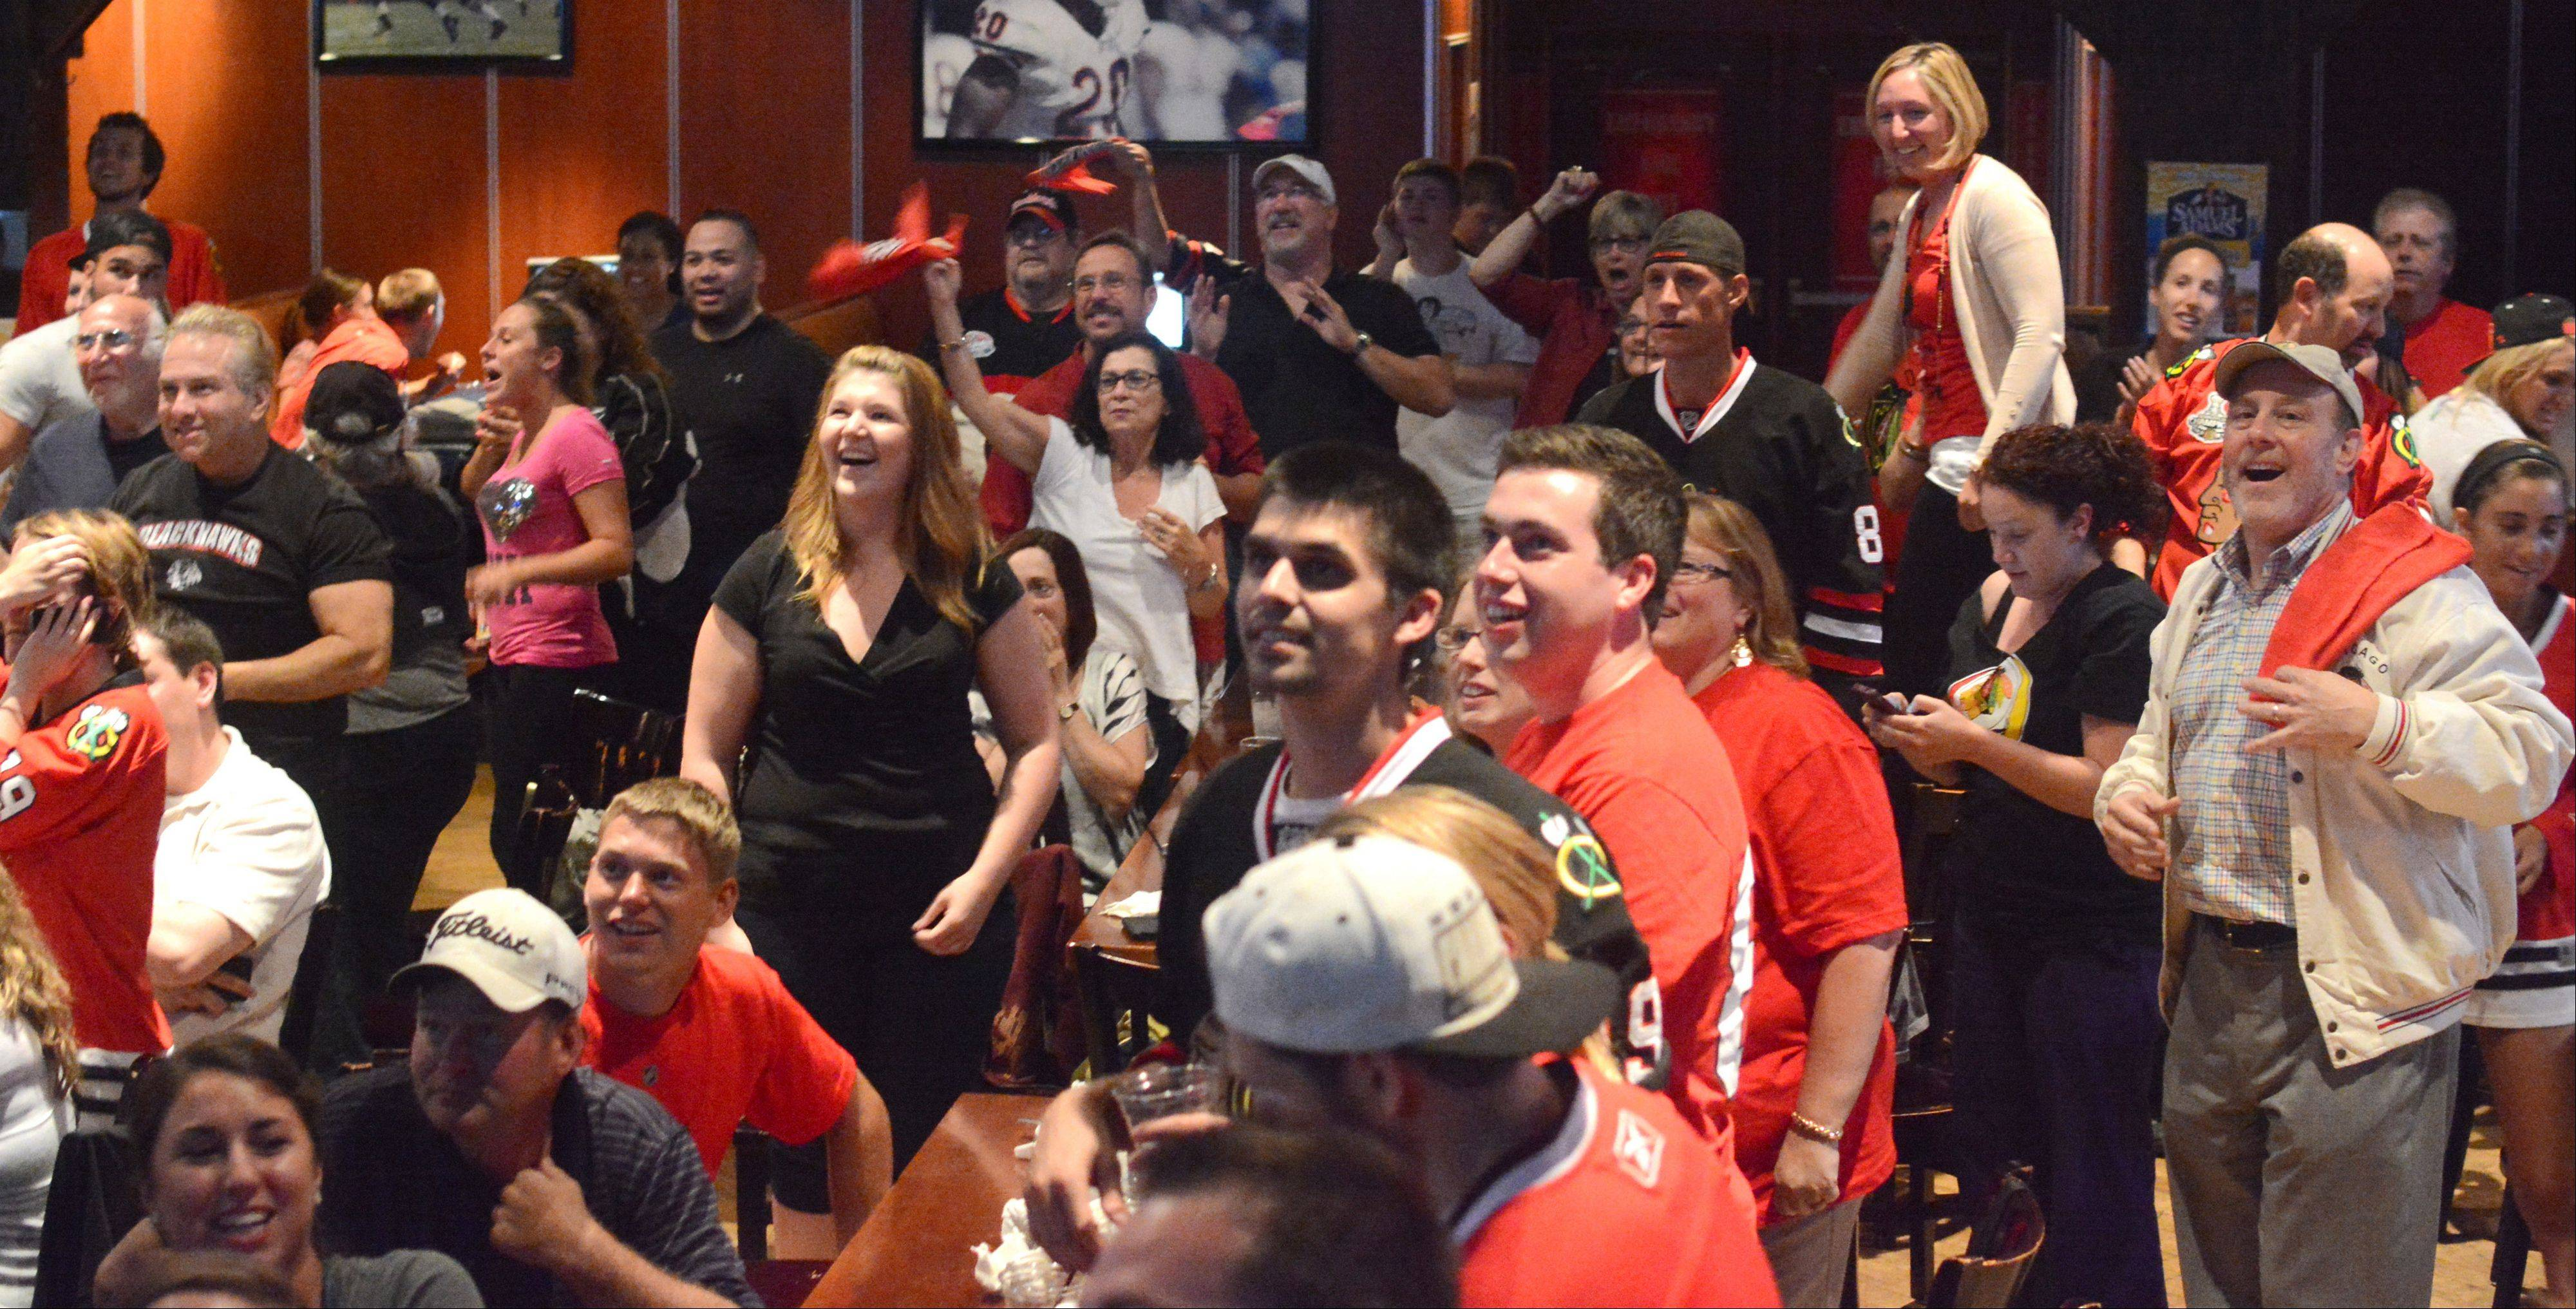 Patrons of The Cubby Bear North react as the Blackhawks win the Stanley Cup Monday.